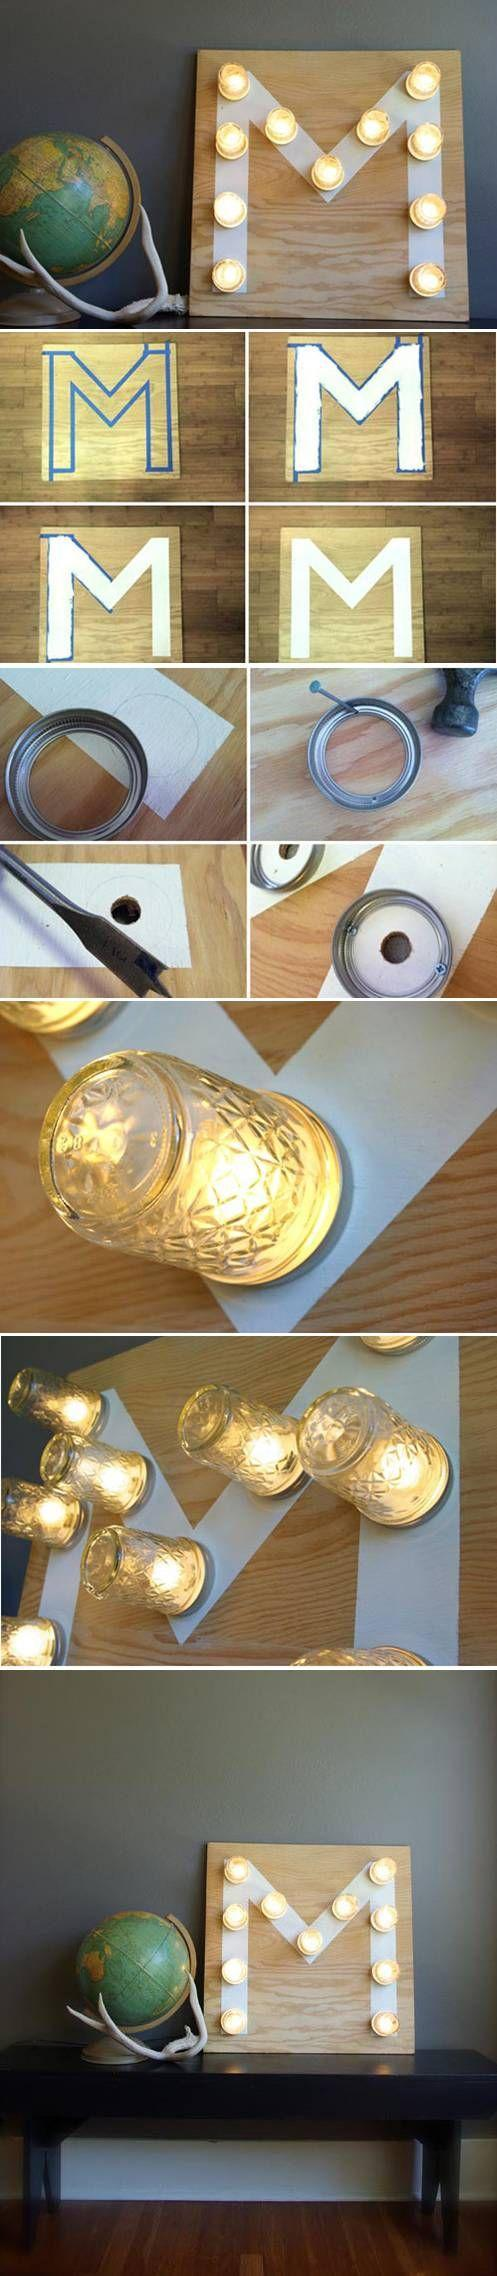 DIY interesting sign - with bulbs and jars